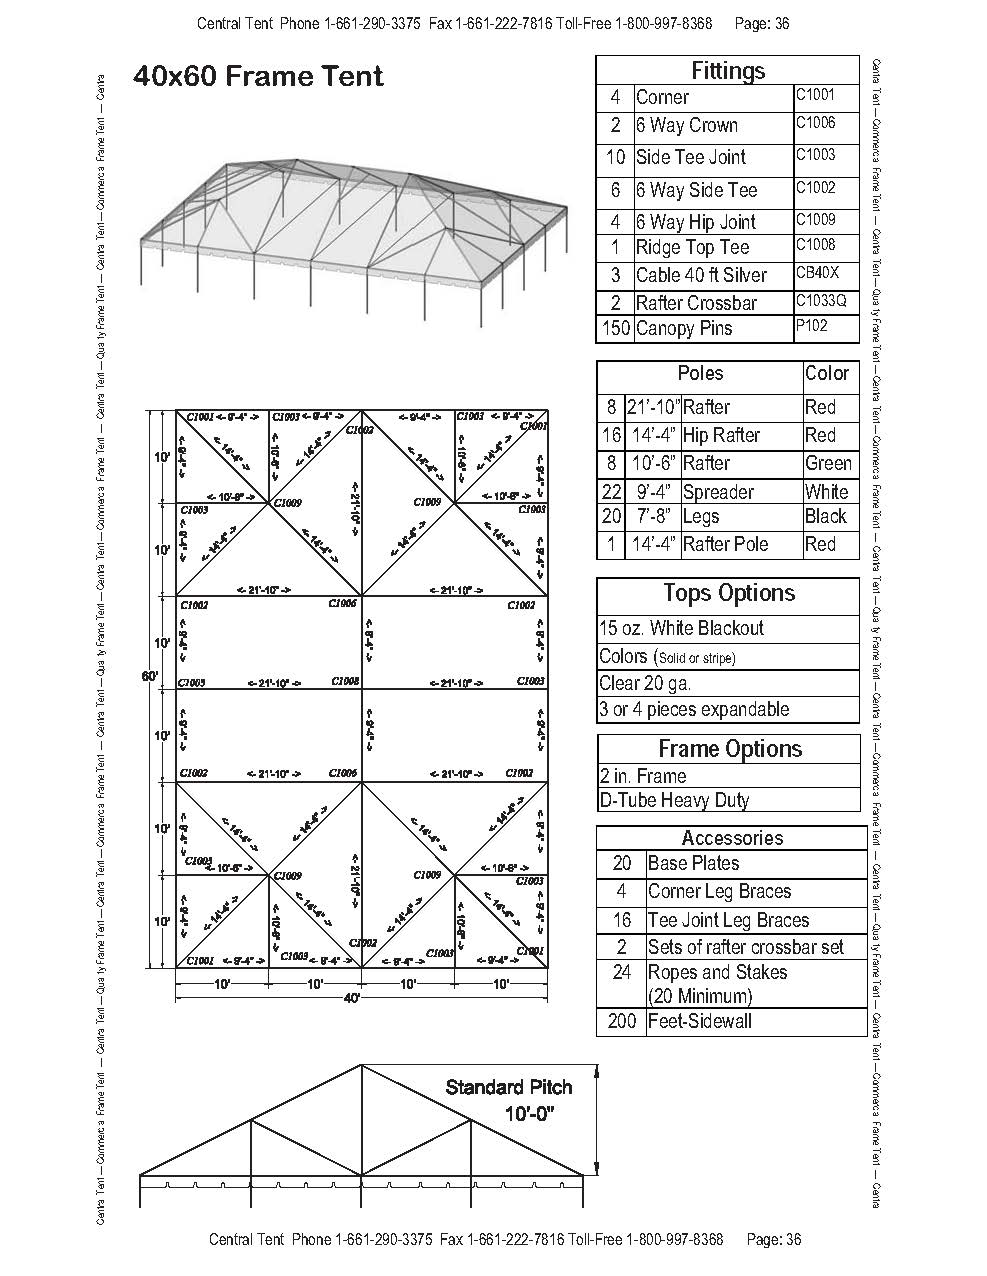 40x60 complete frame tent - central tent yamaha 40 wiring diagram ignition